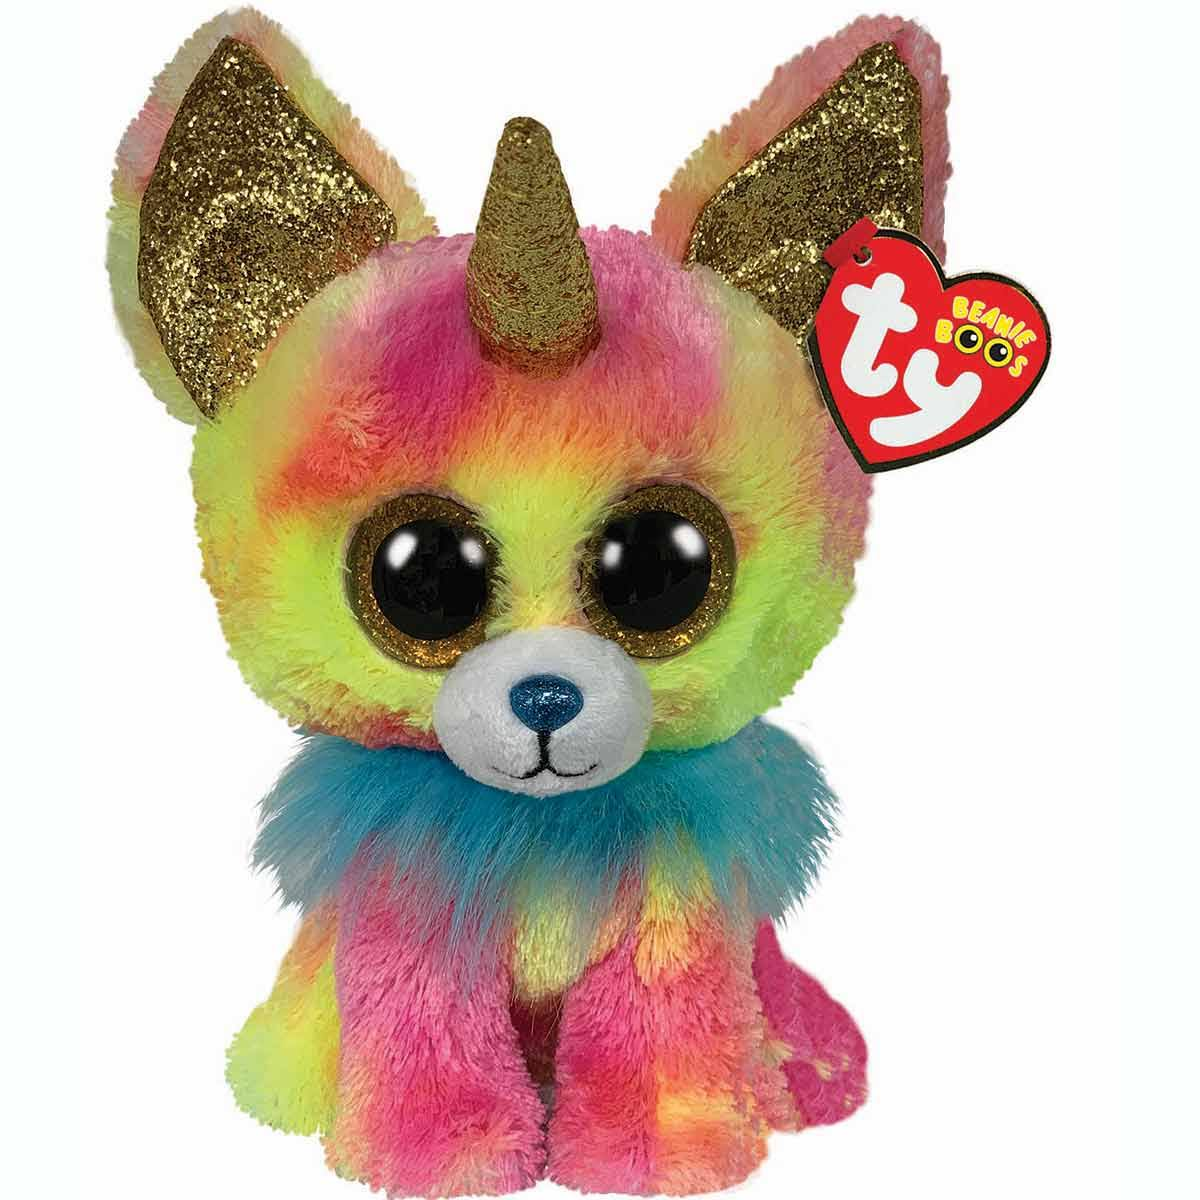 Ty Beanie Boo's Toy, Yips